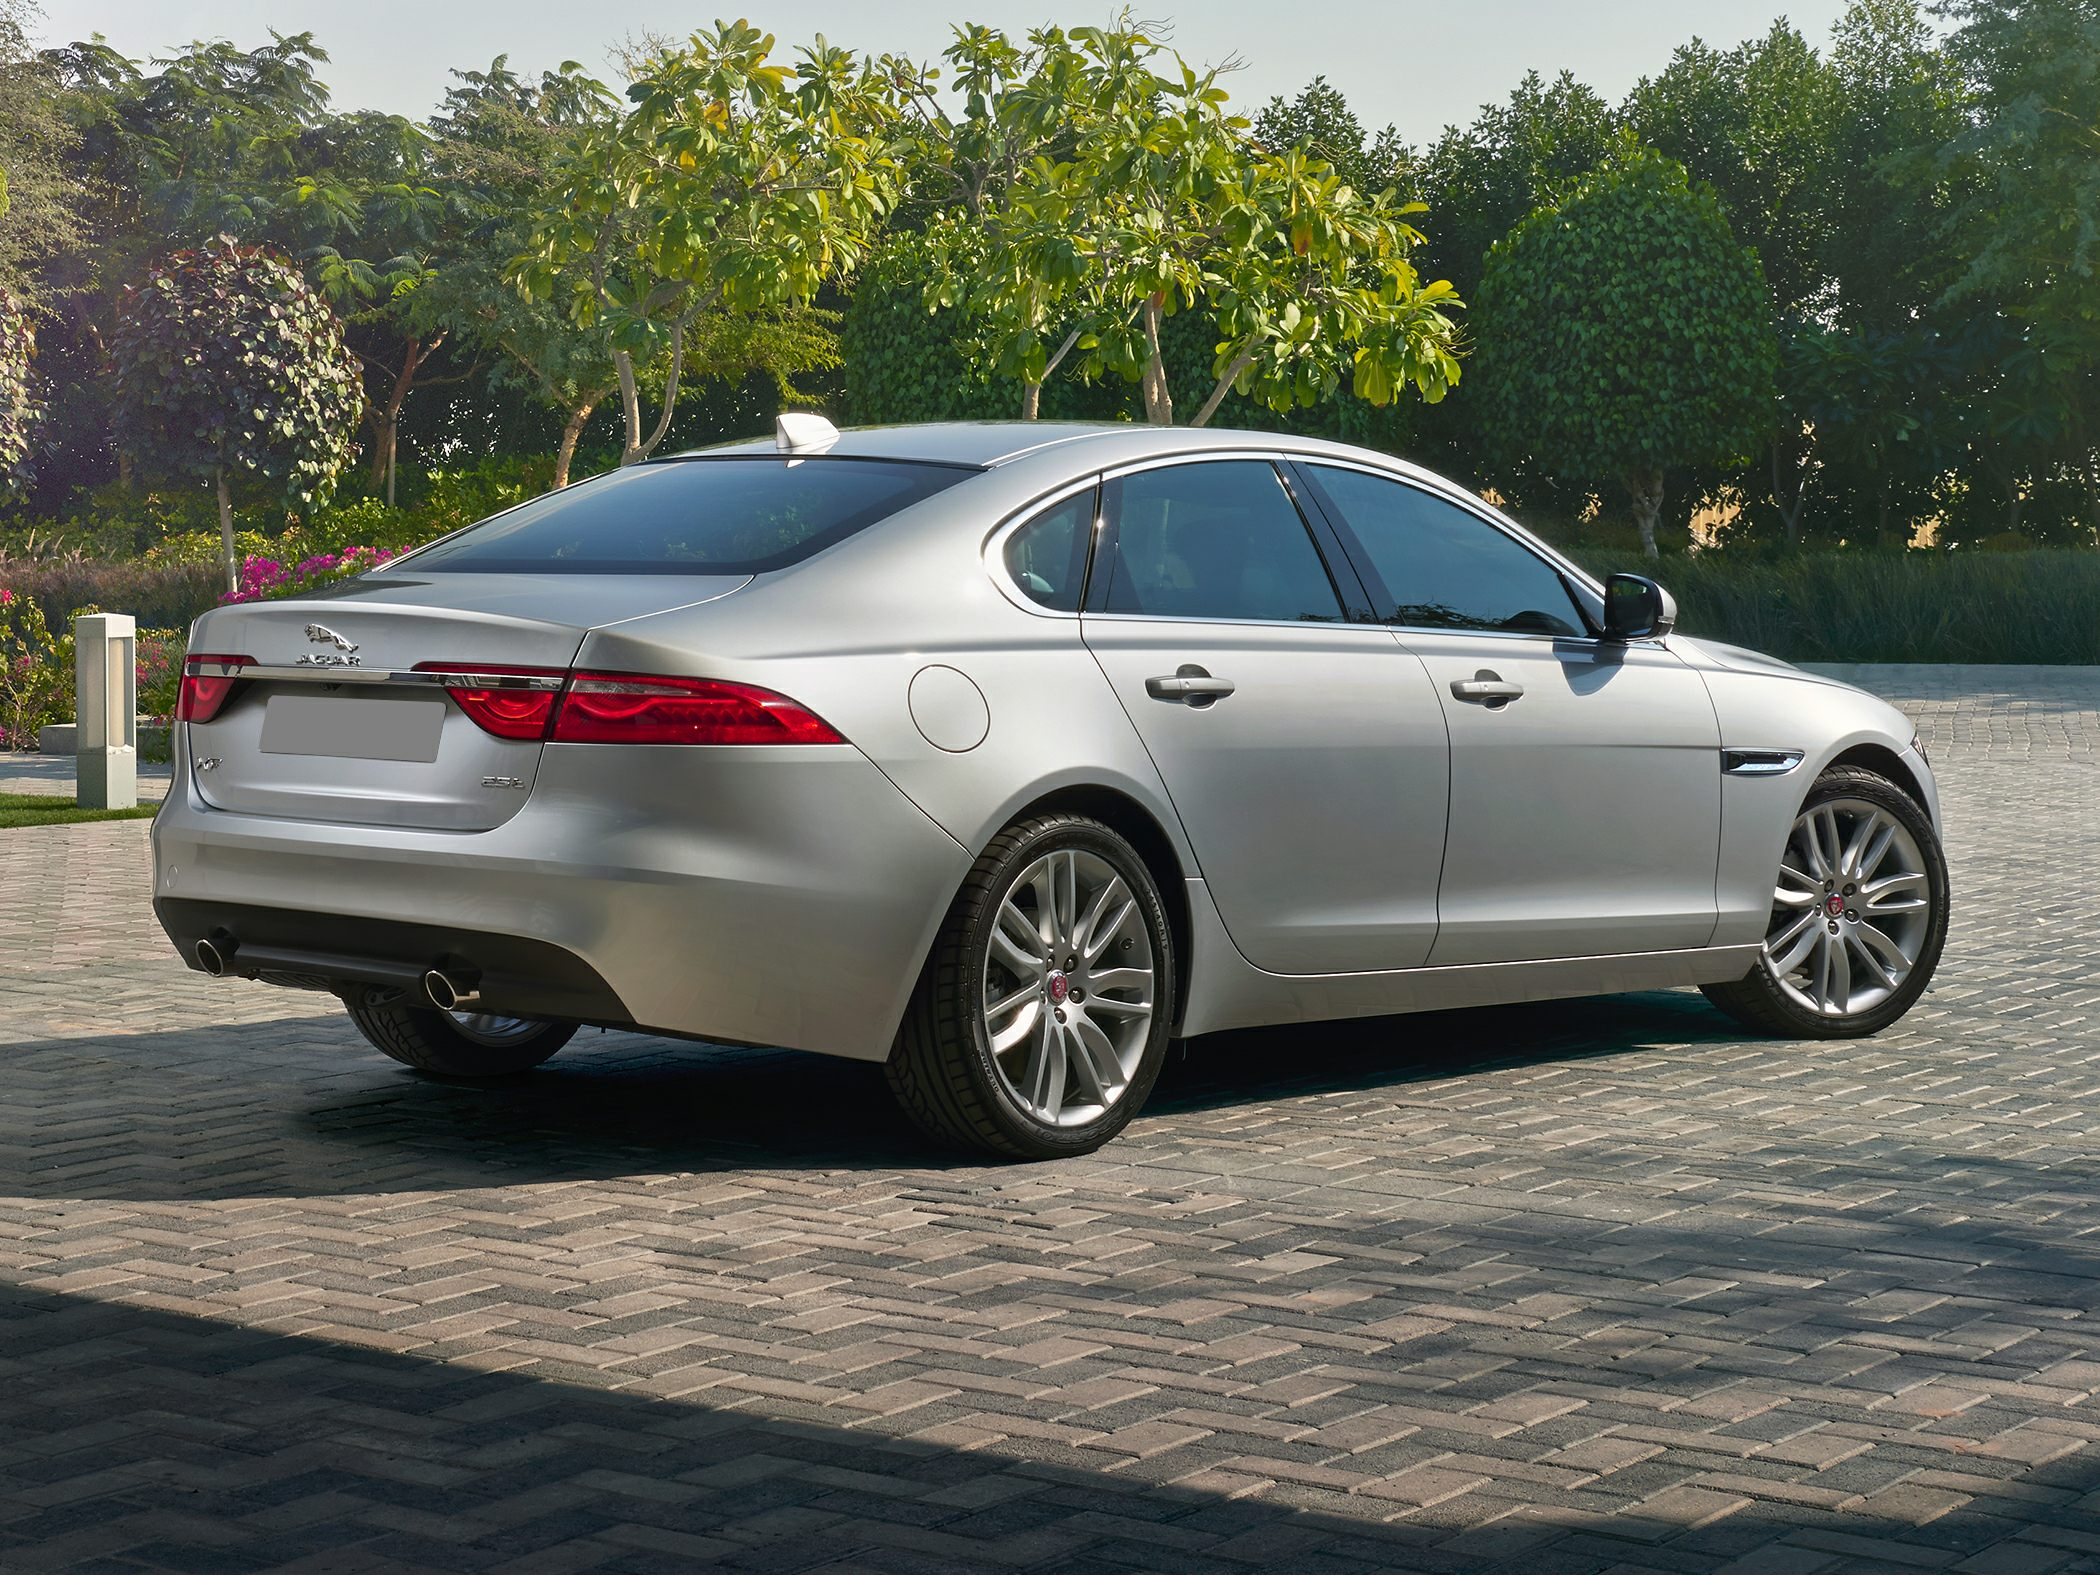 2017 jaguar xf deals prices incentives leases overview carsdirect. Black Bedroom Furniture Sets. Home Design Ideas